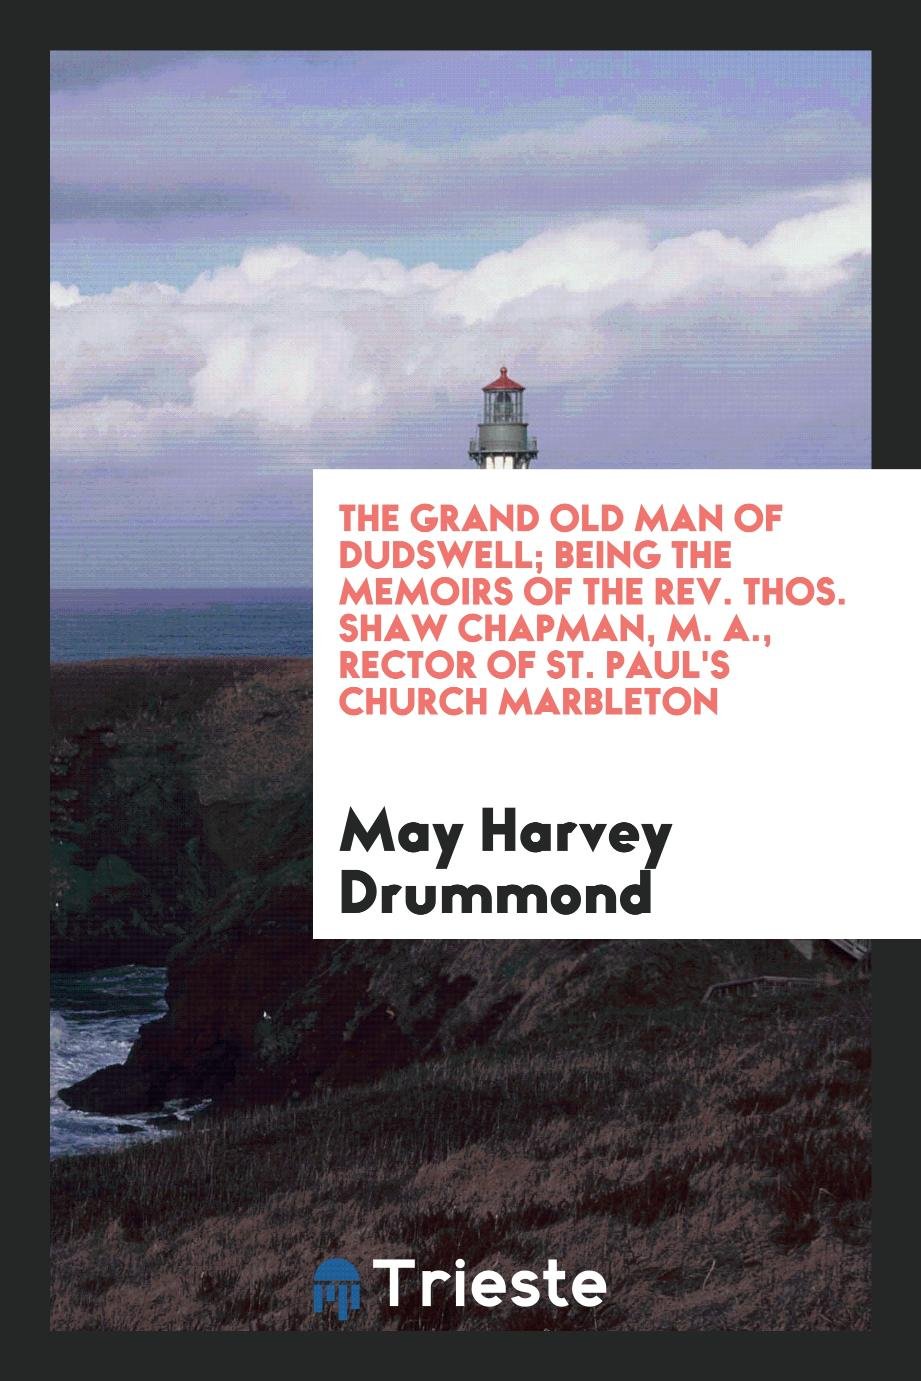 The grand old man of Dudswell; being the memoirs of the Rev. Thos. Shaw Chapman, M. A., rector of st. Paul's church marbleton